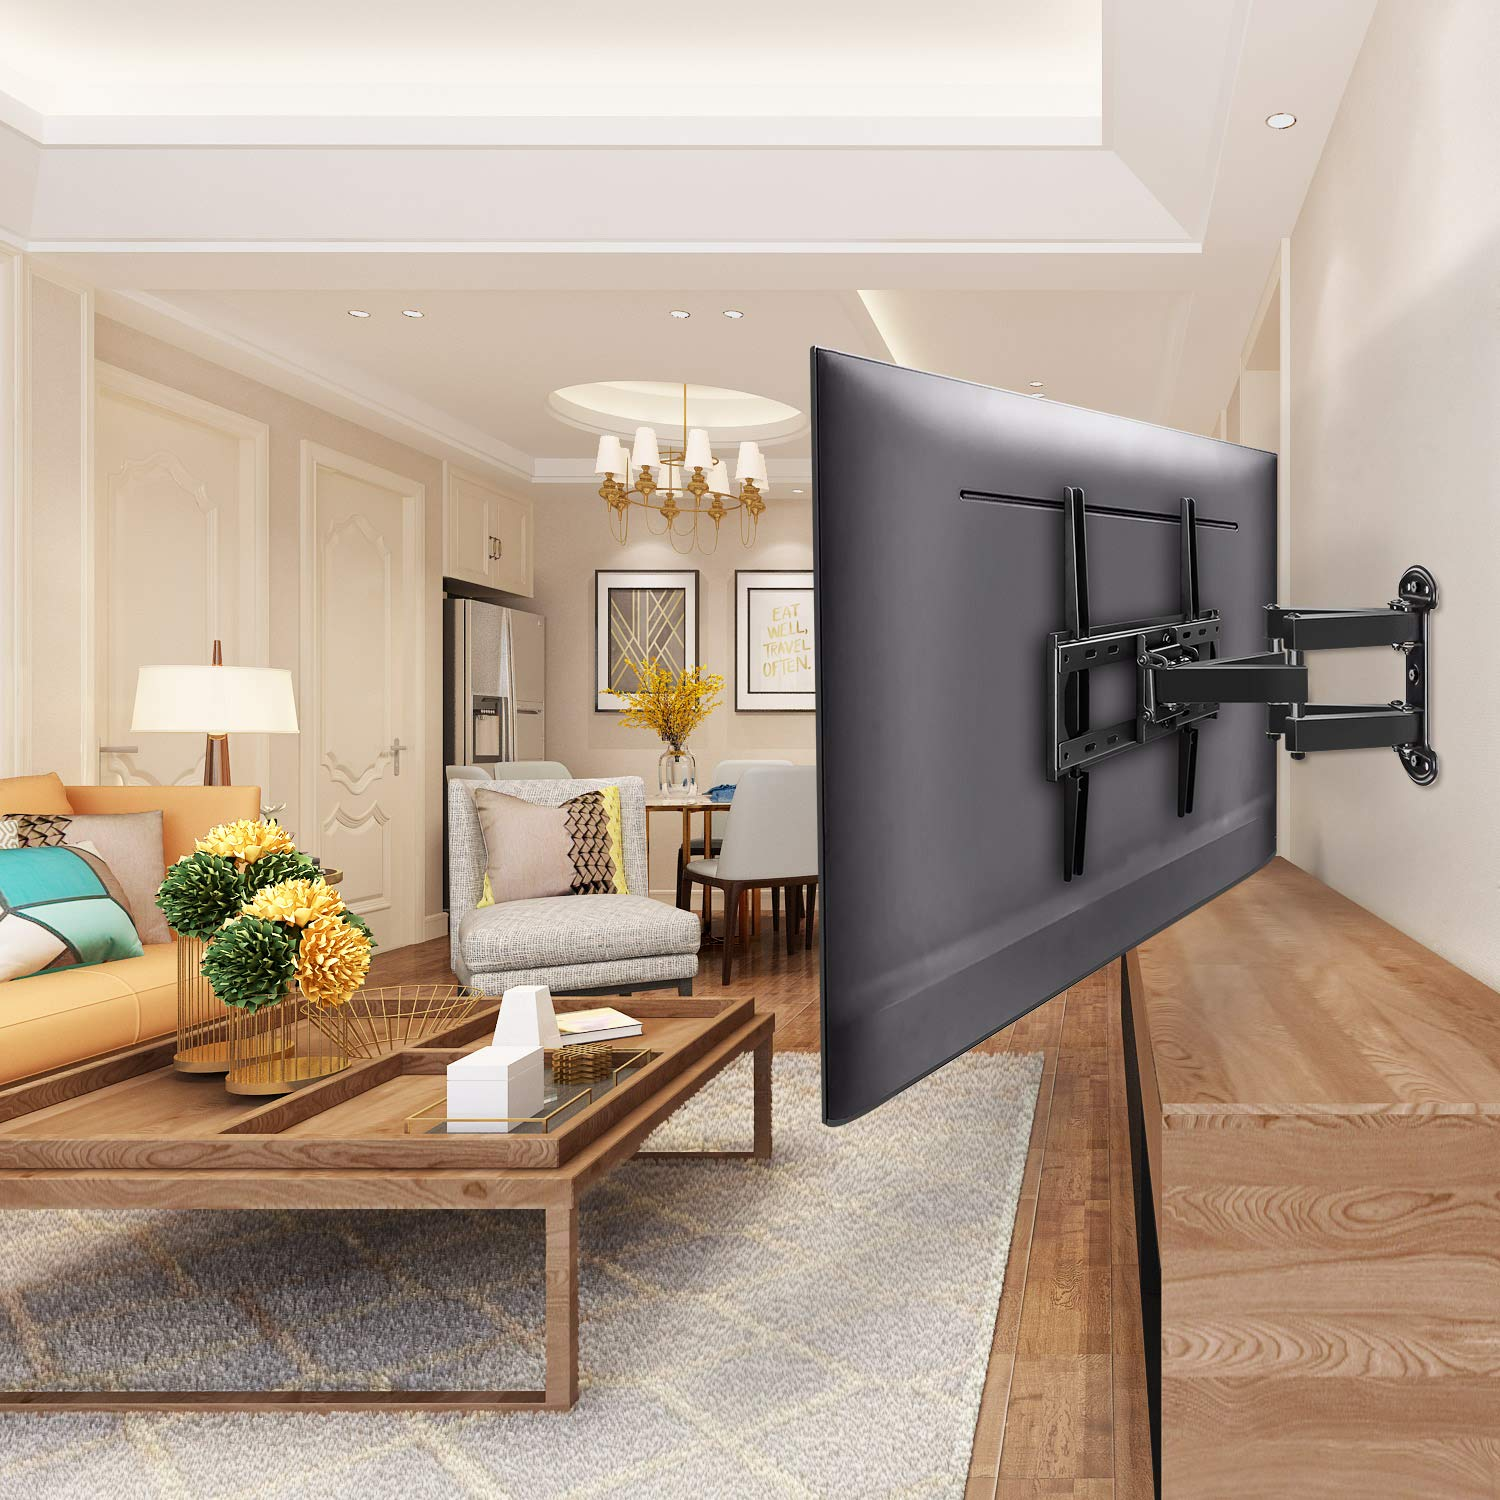 The Mounting Dream TV mount is one of the best single stud TV mounts on the market.